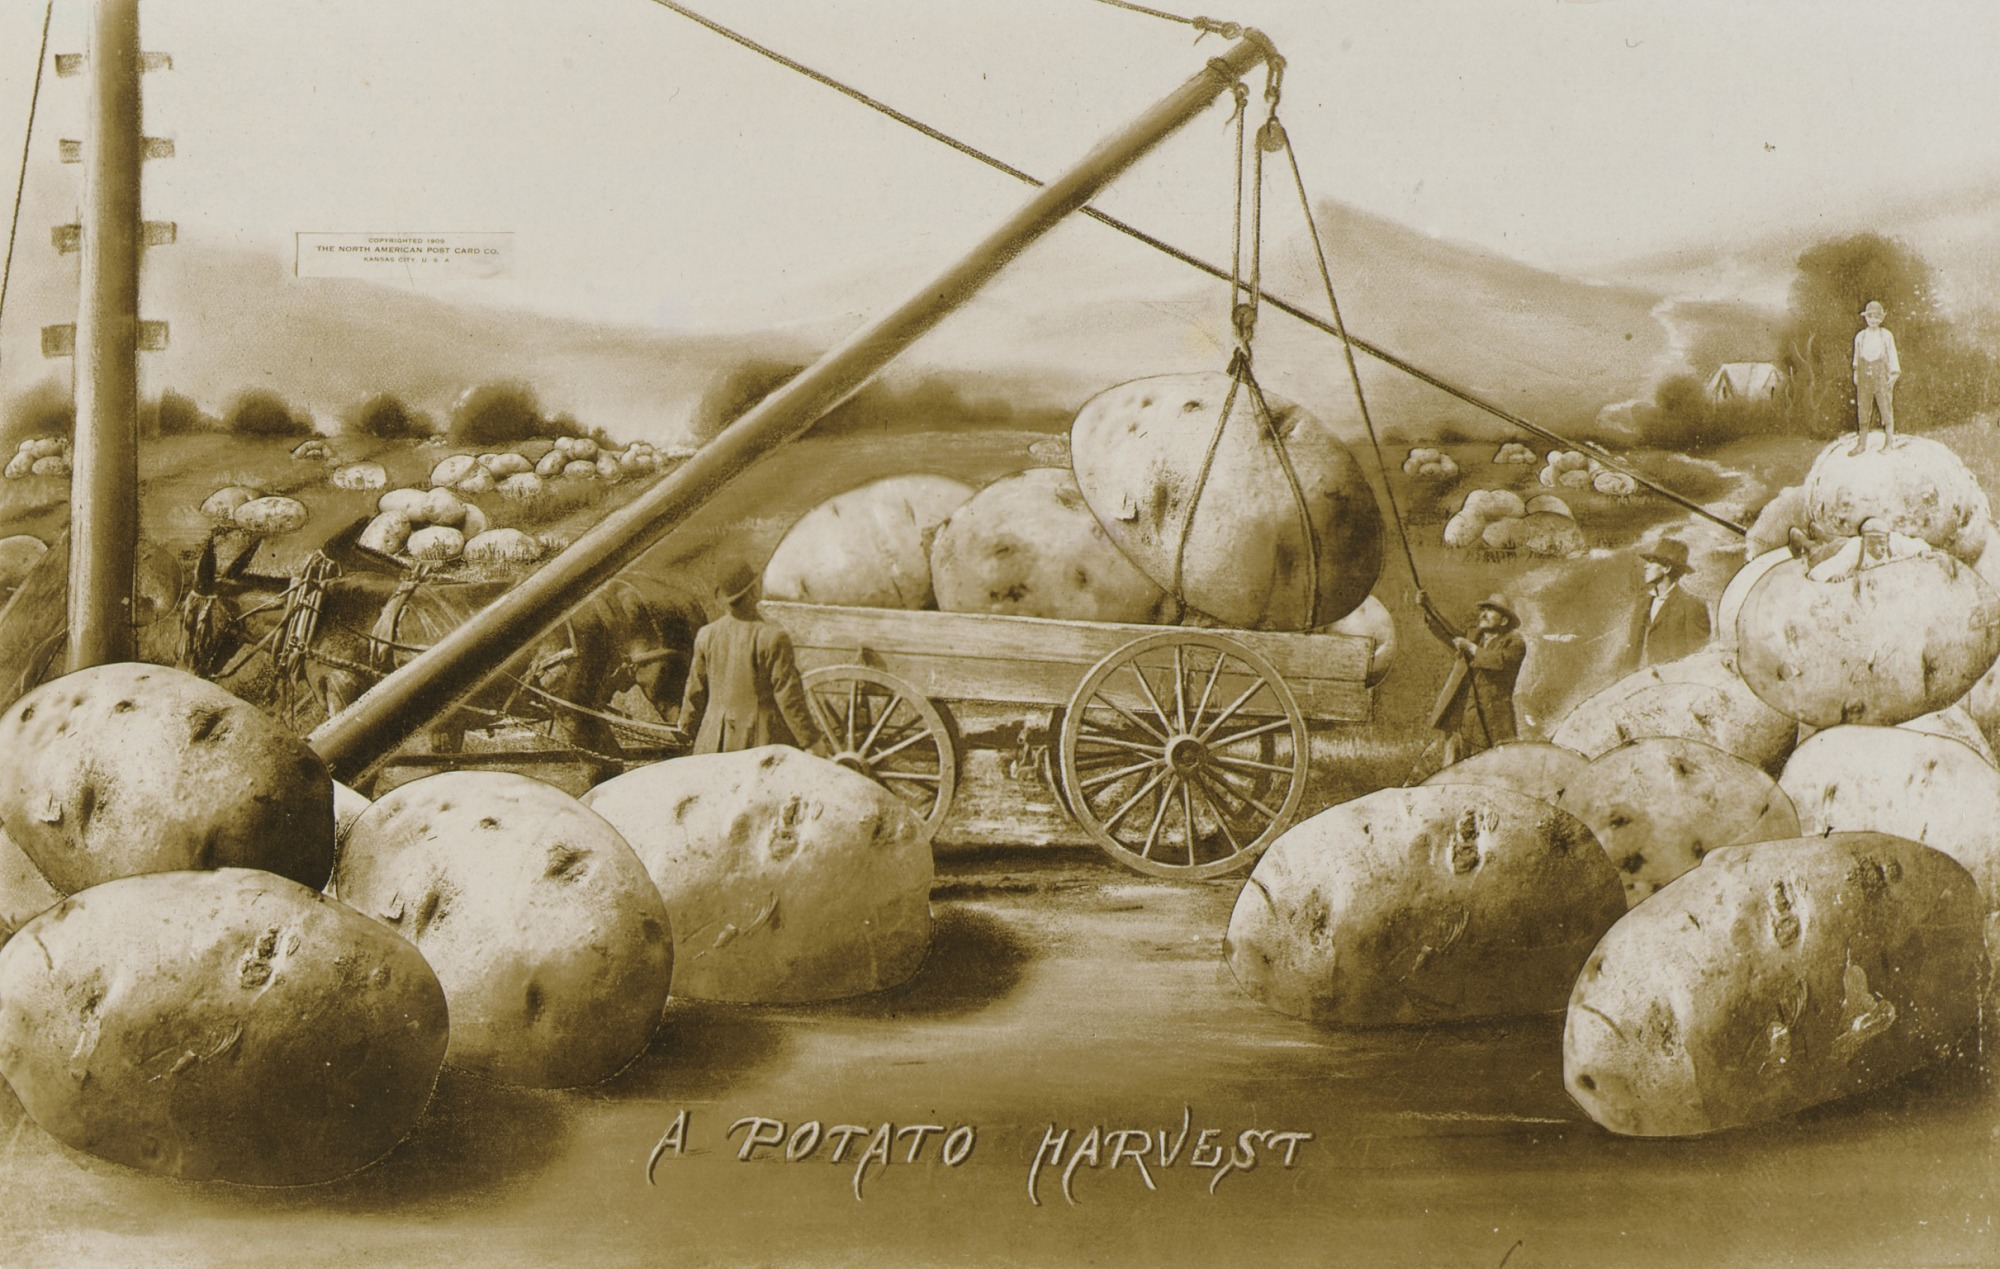 images for A Potato Harvest